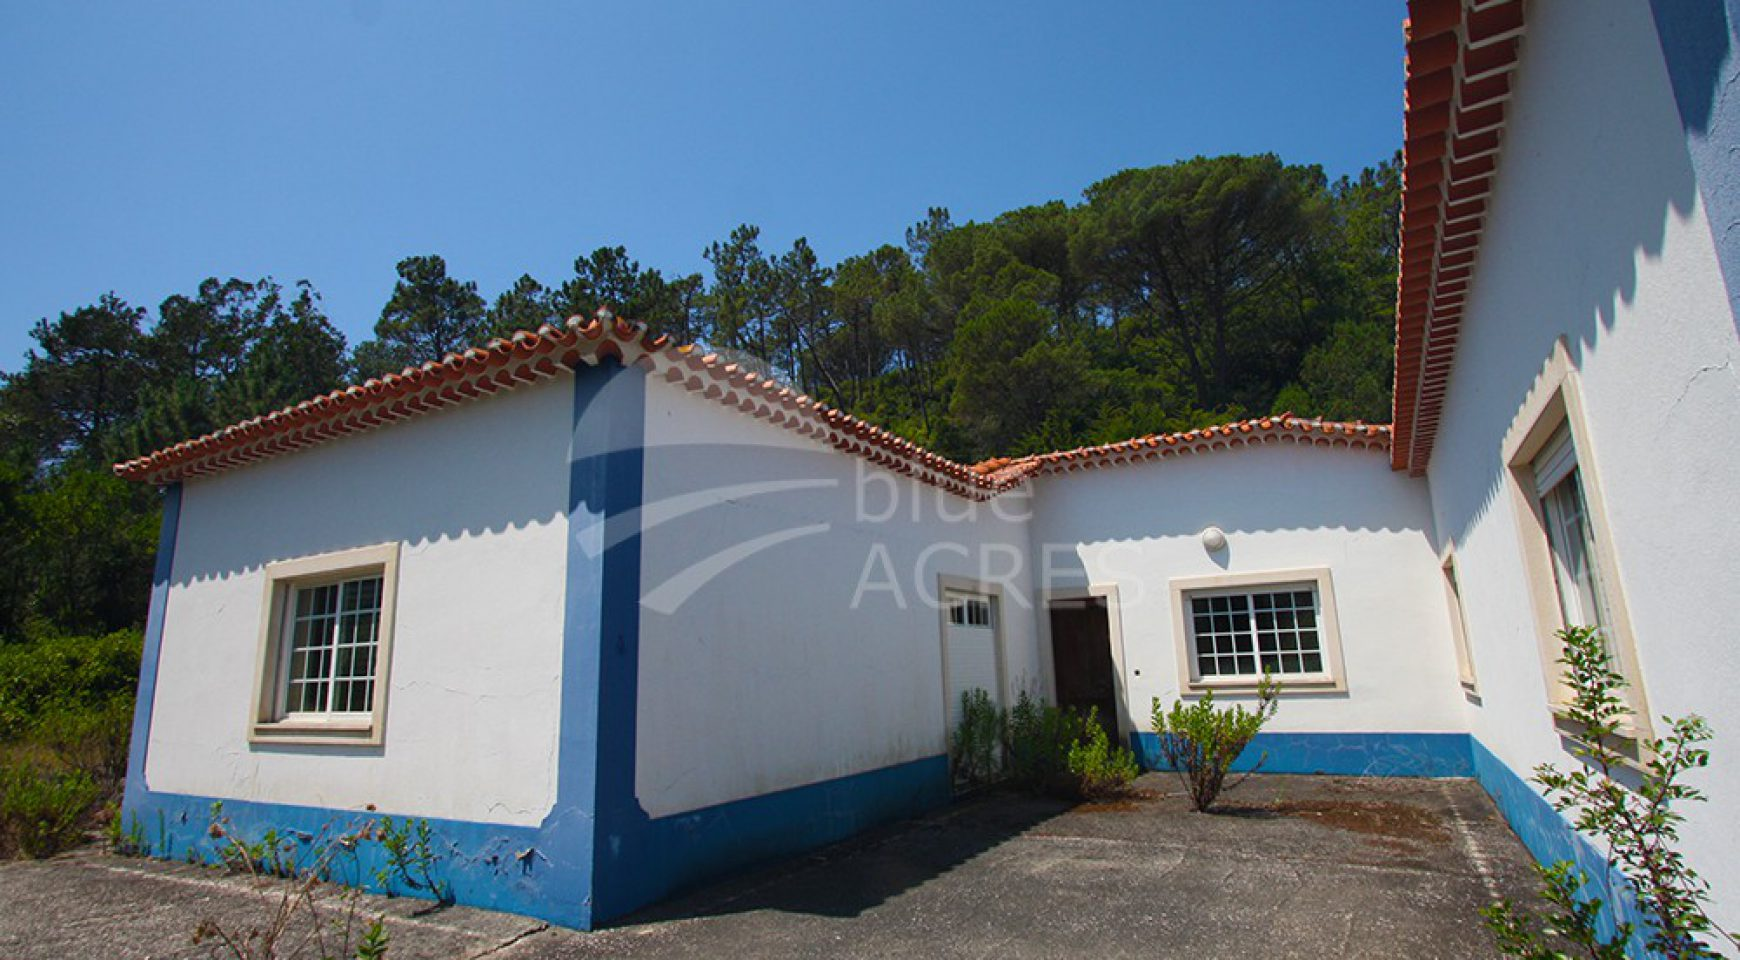 1019, small farm Óbidos, 4 bedrooms, annex with living room and kitchen